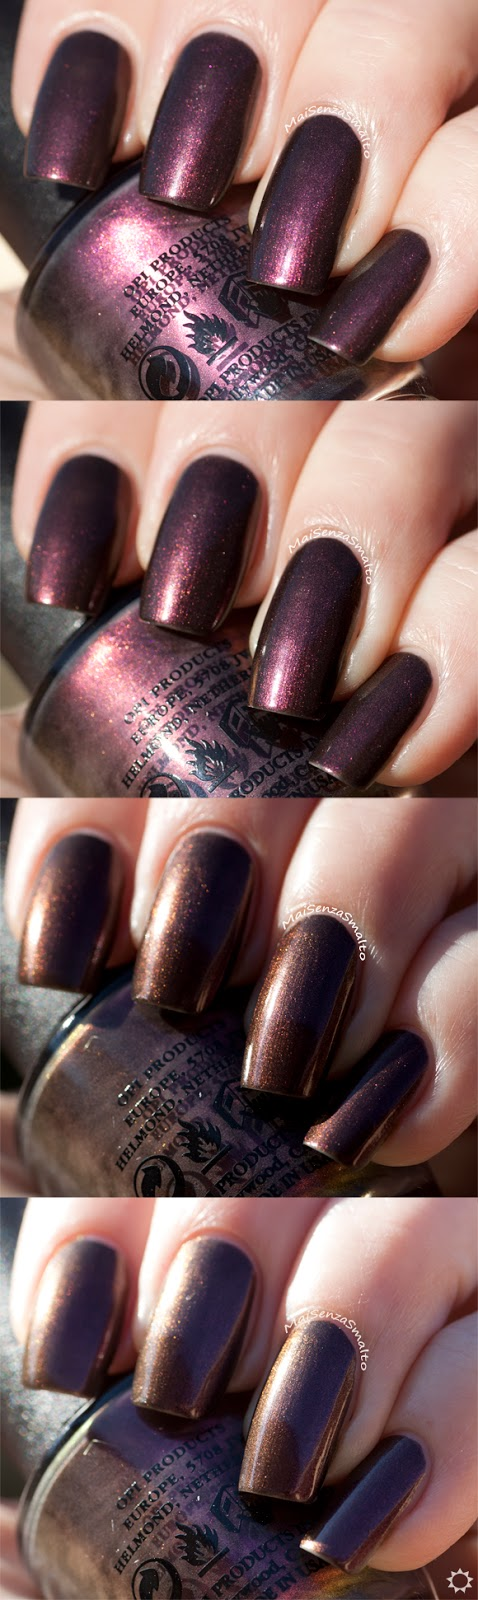 OPI Muir Muir on the wall color shift (4 pics)